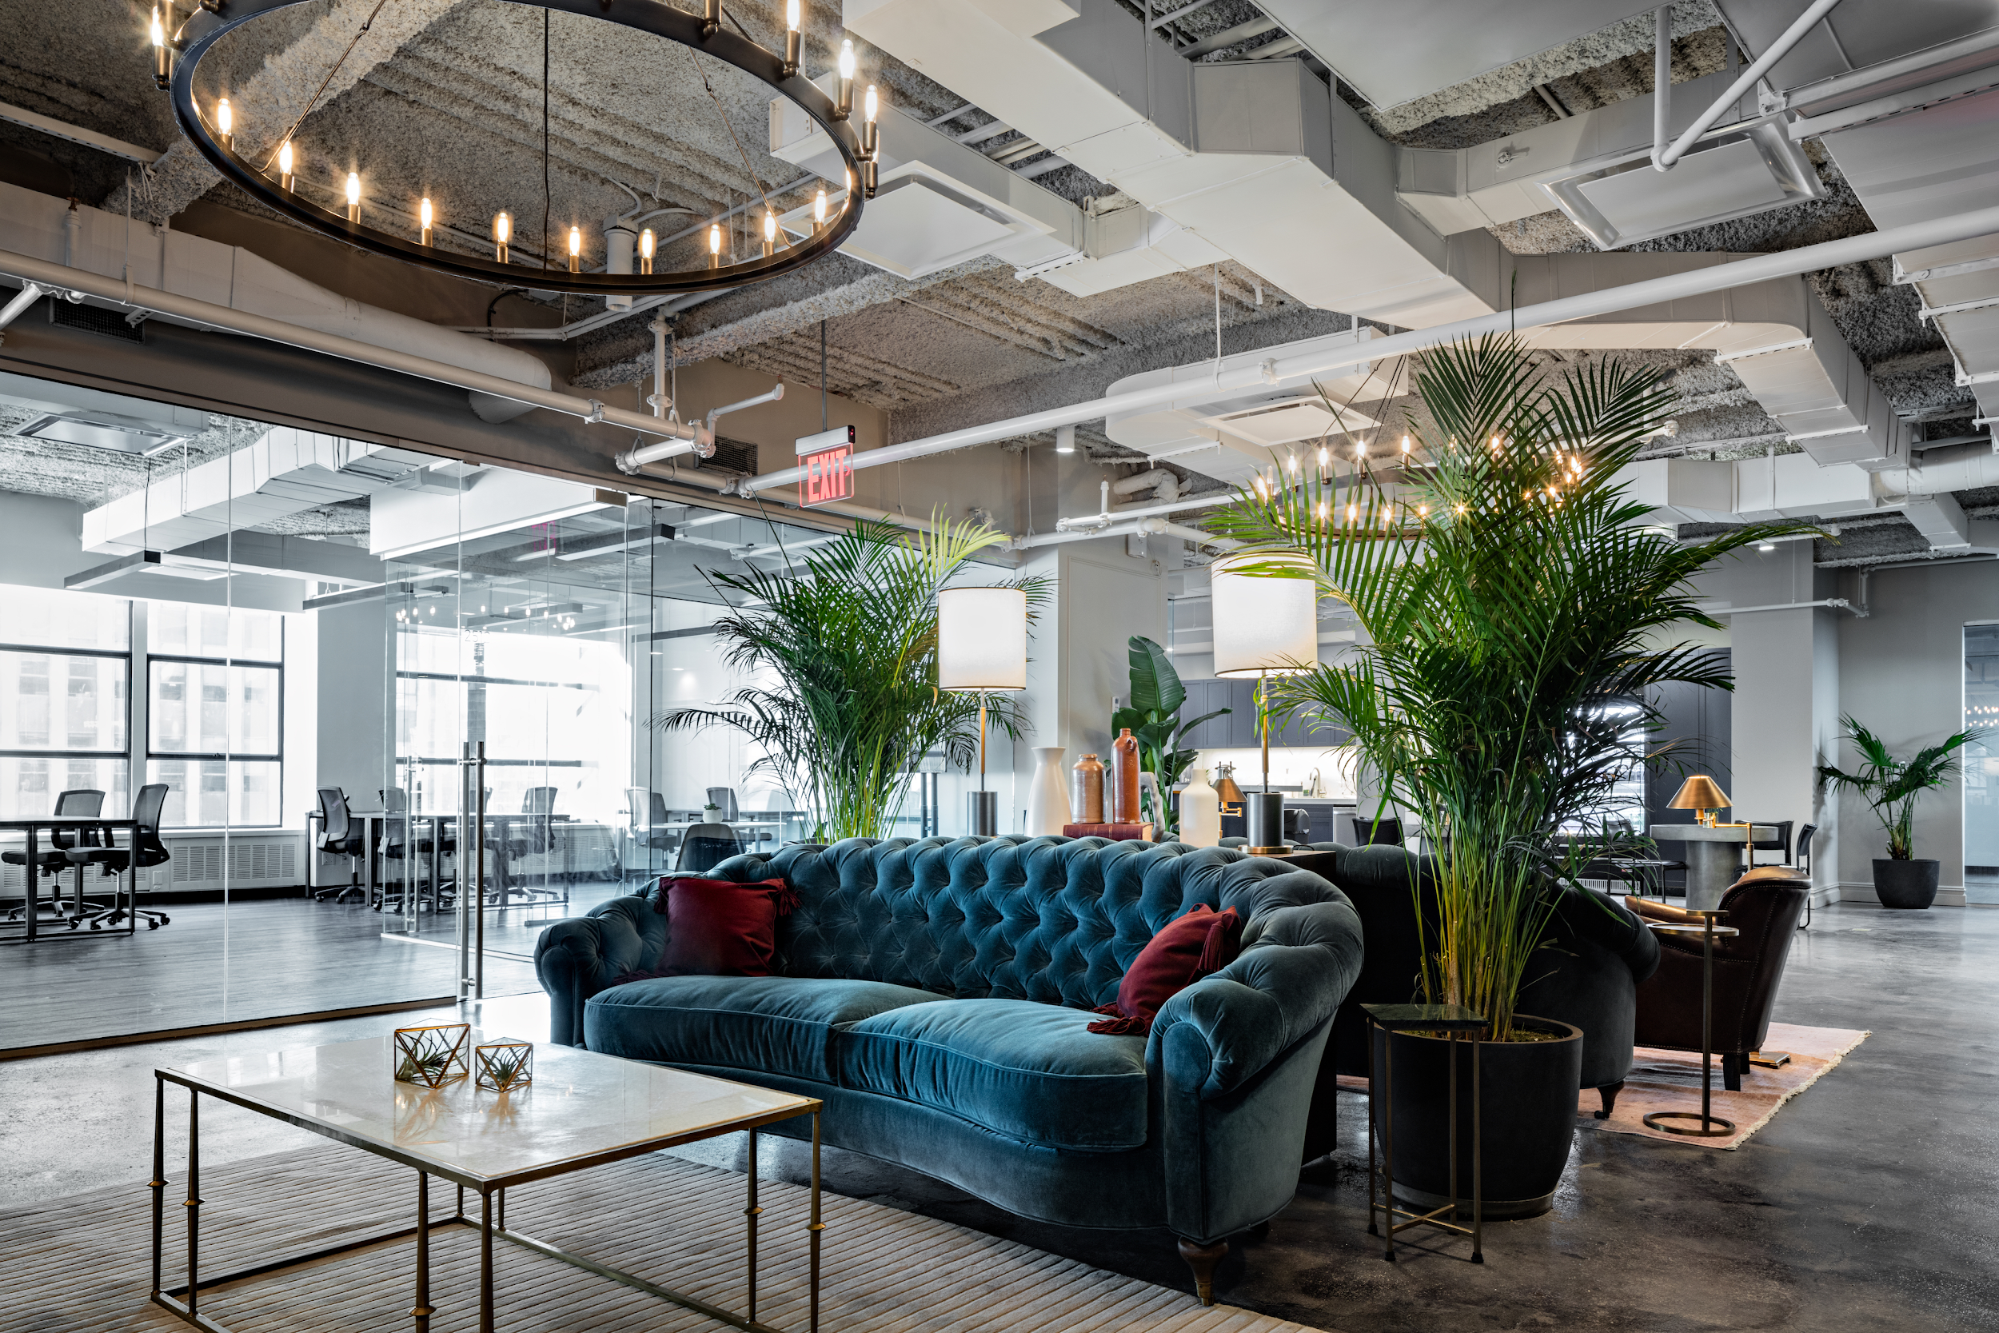 bright open-concept coworking office in a renovated industrial space, with large chandeliers and colorful couches